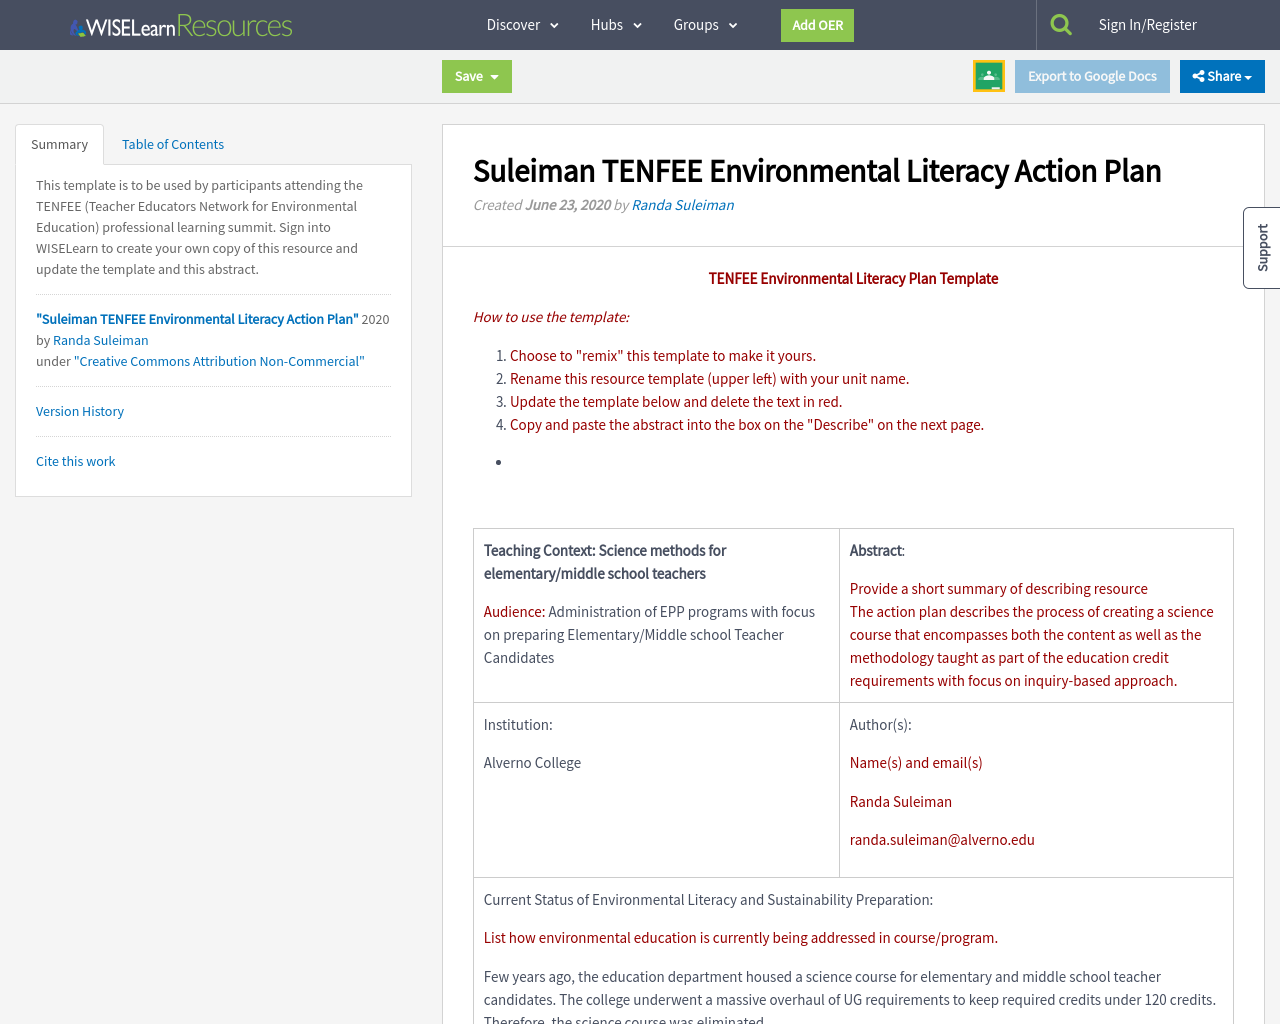 Suleiman Tenfee Environmental Literacy Action Plan Wiselearn Resources